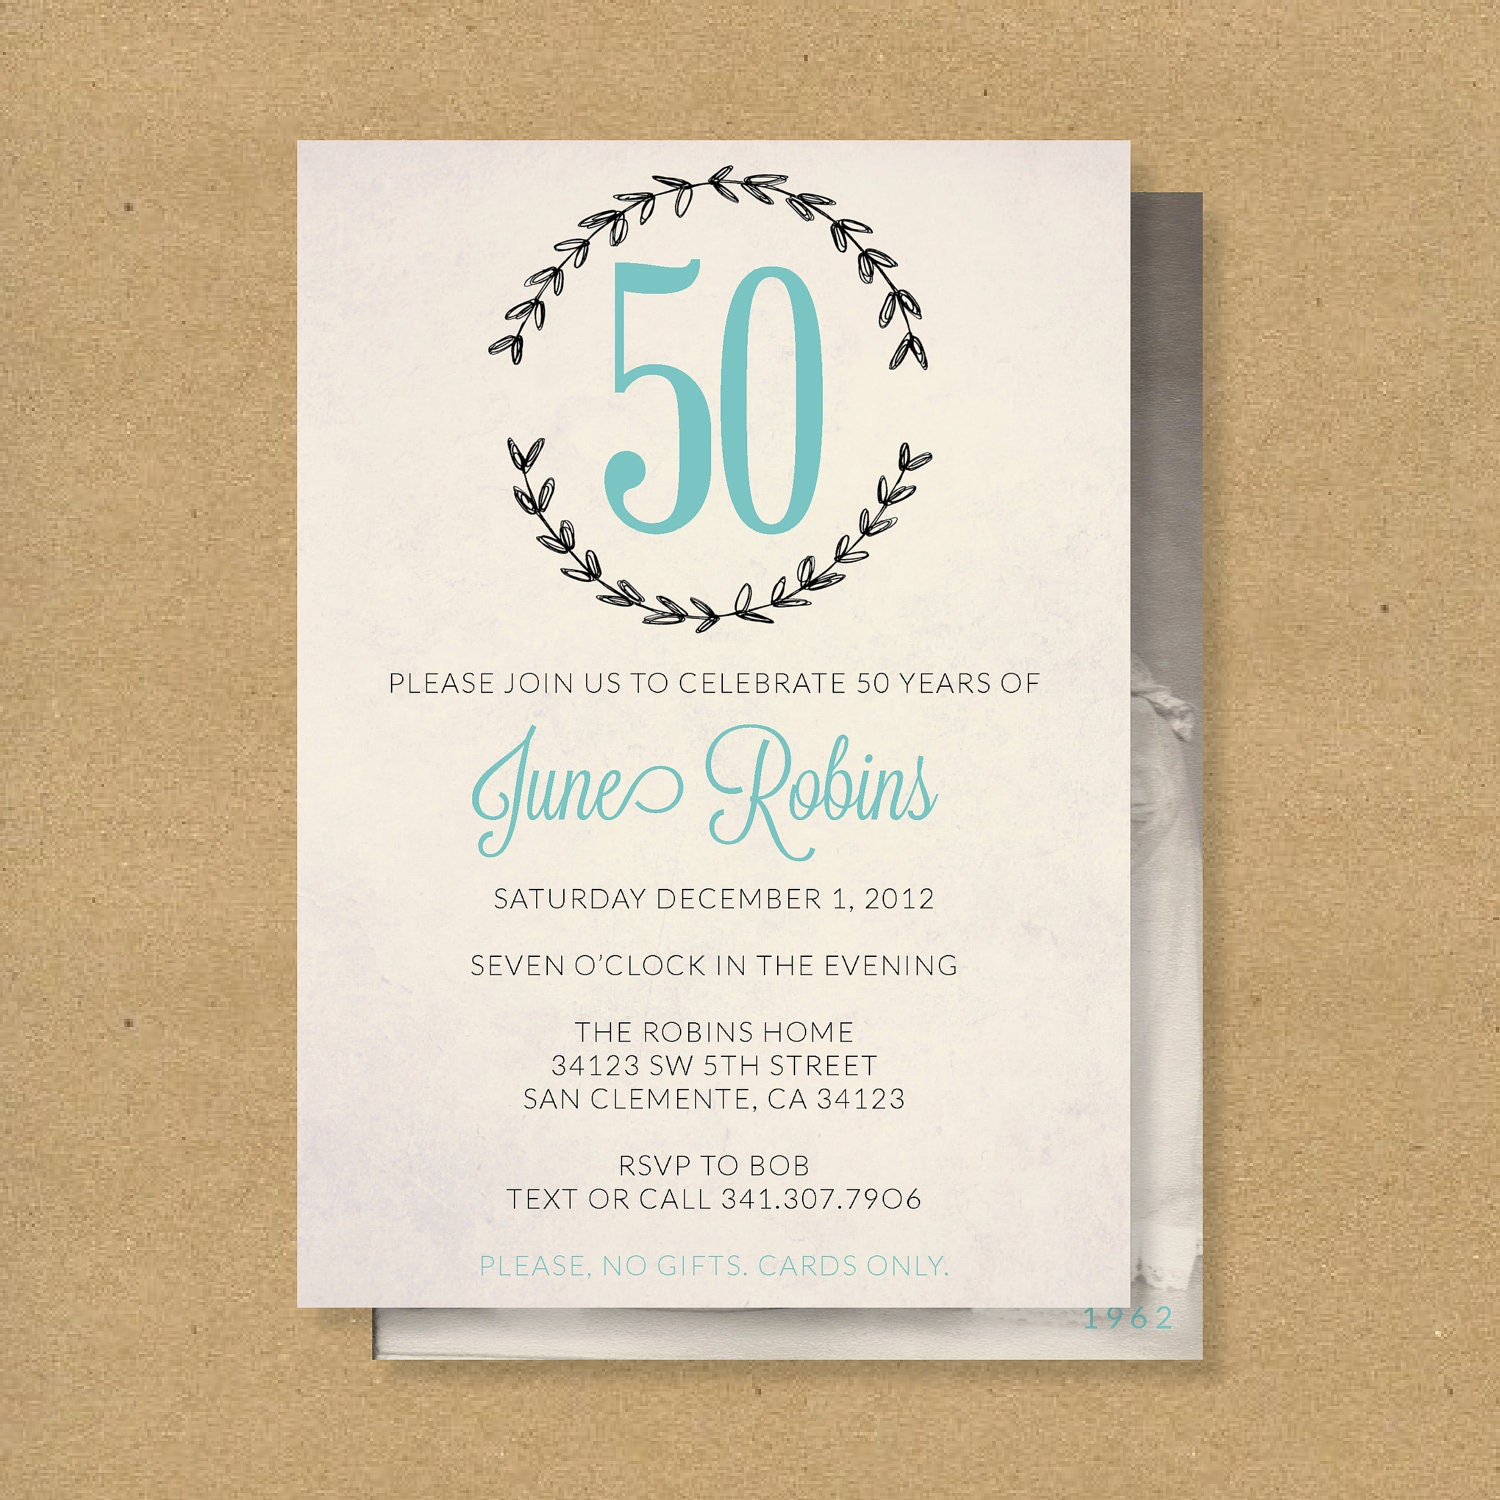 Th Birthday Invitations Free Printable Pasoevolistco - Party invitation template: 40th birthday party invites free templates